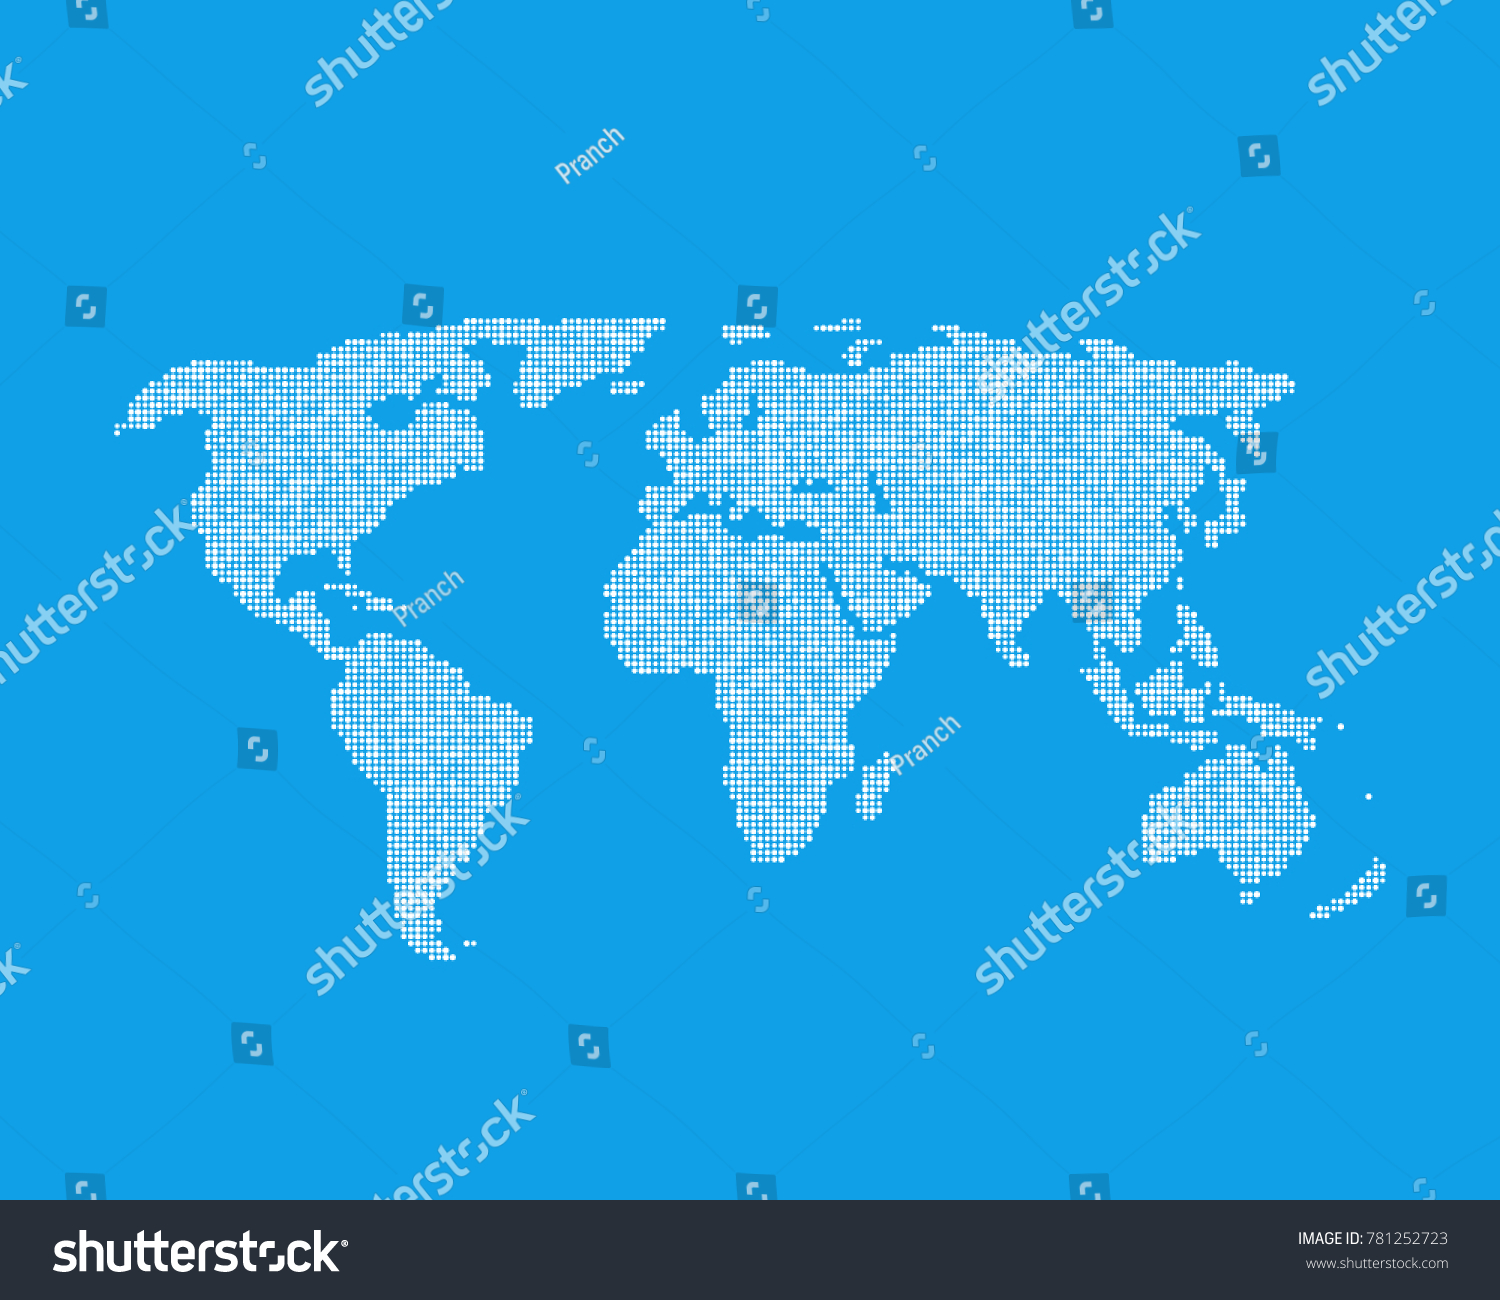 White global world map like infographic vector de stock781252723 white global world map like infographic element concept of earth globe from little dots worldmap gumiabroncs Choice Image